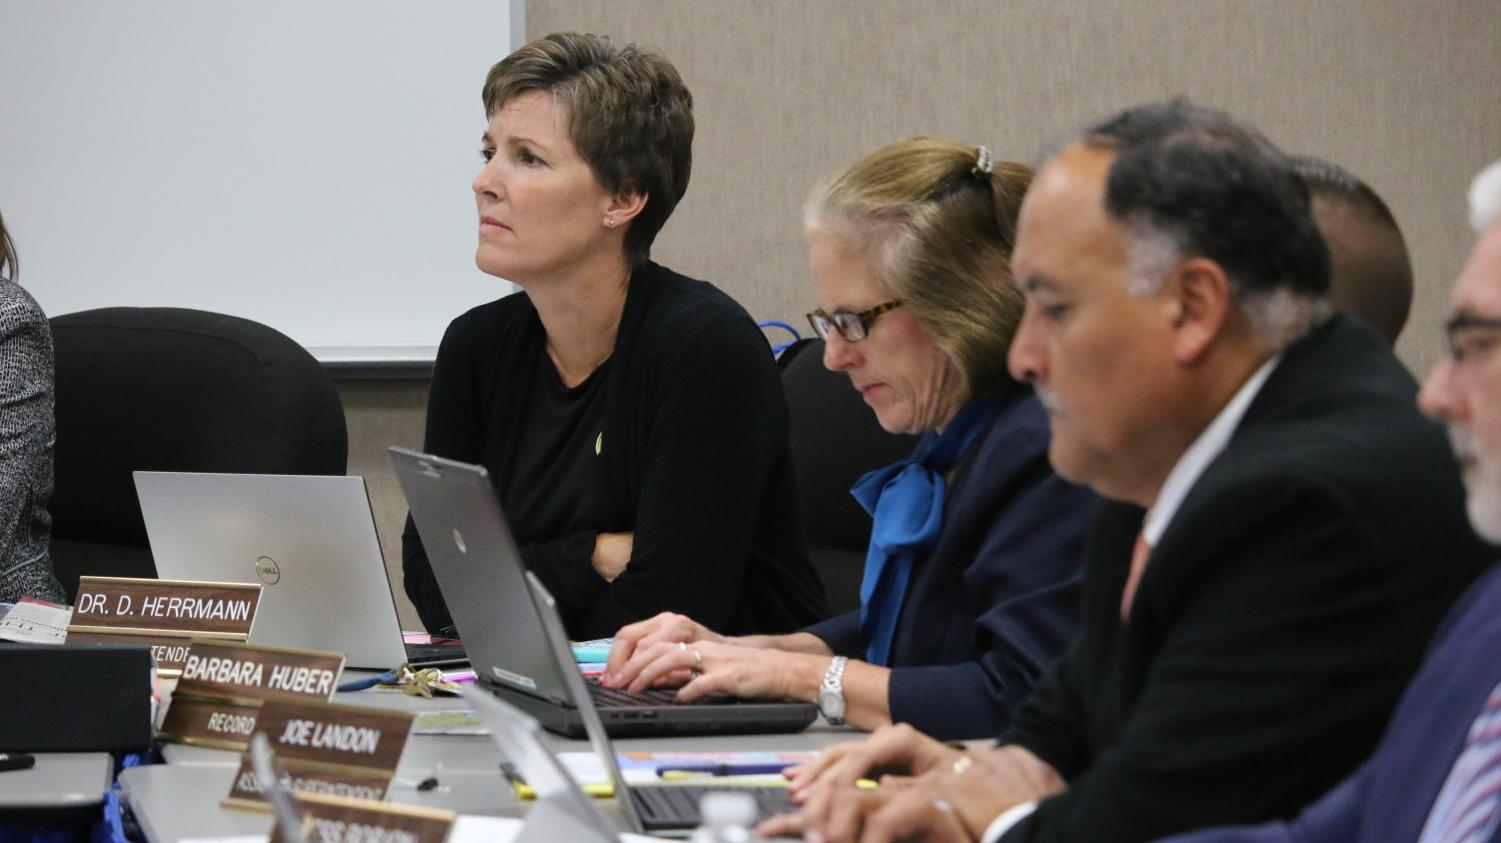 According to RJUHSD superintendent Denise Herrmann, high suspension rates in the district led to suggestions from the CDE to alter practices to reduce suspensions.